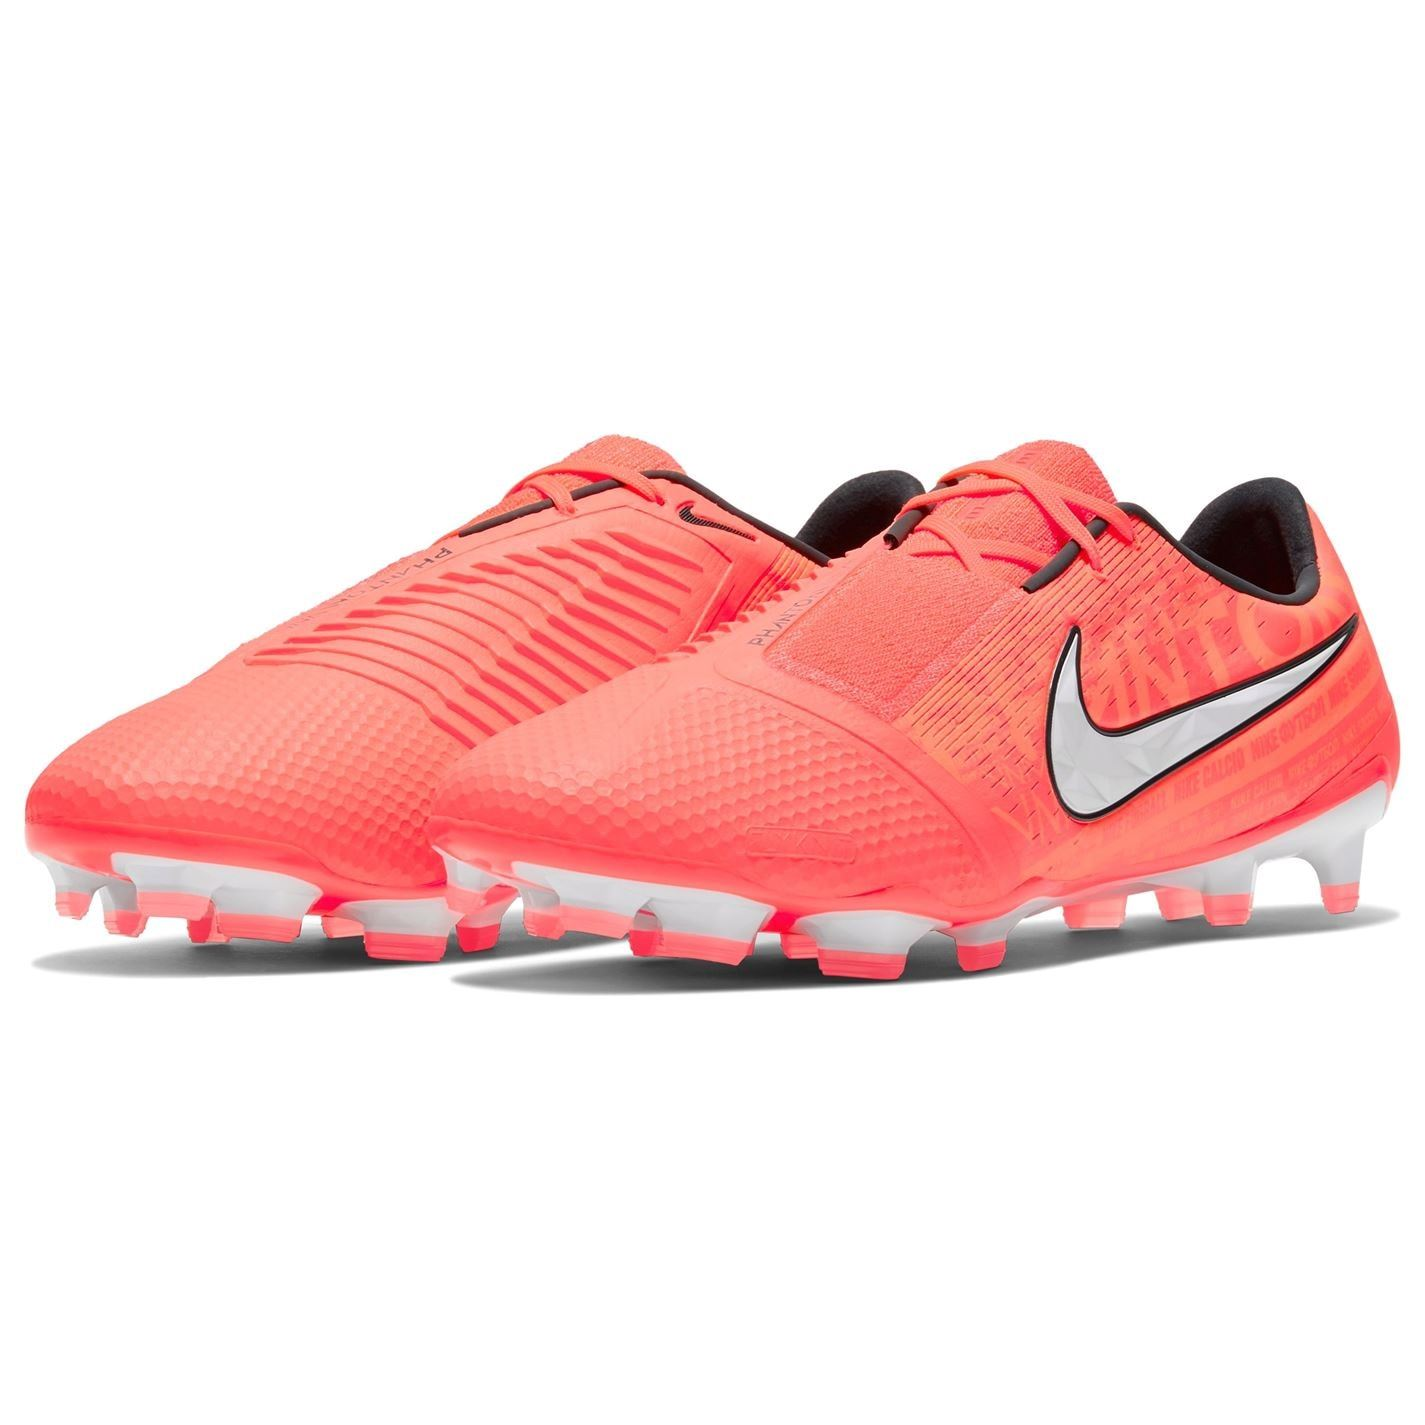 Nike-Phantom-Venom-Elite-Homme-FG-Firm-Ground-Chaussures-De-Football-Chaussures-de-foot-crampons miniature 9